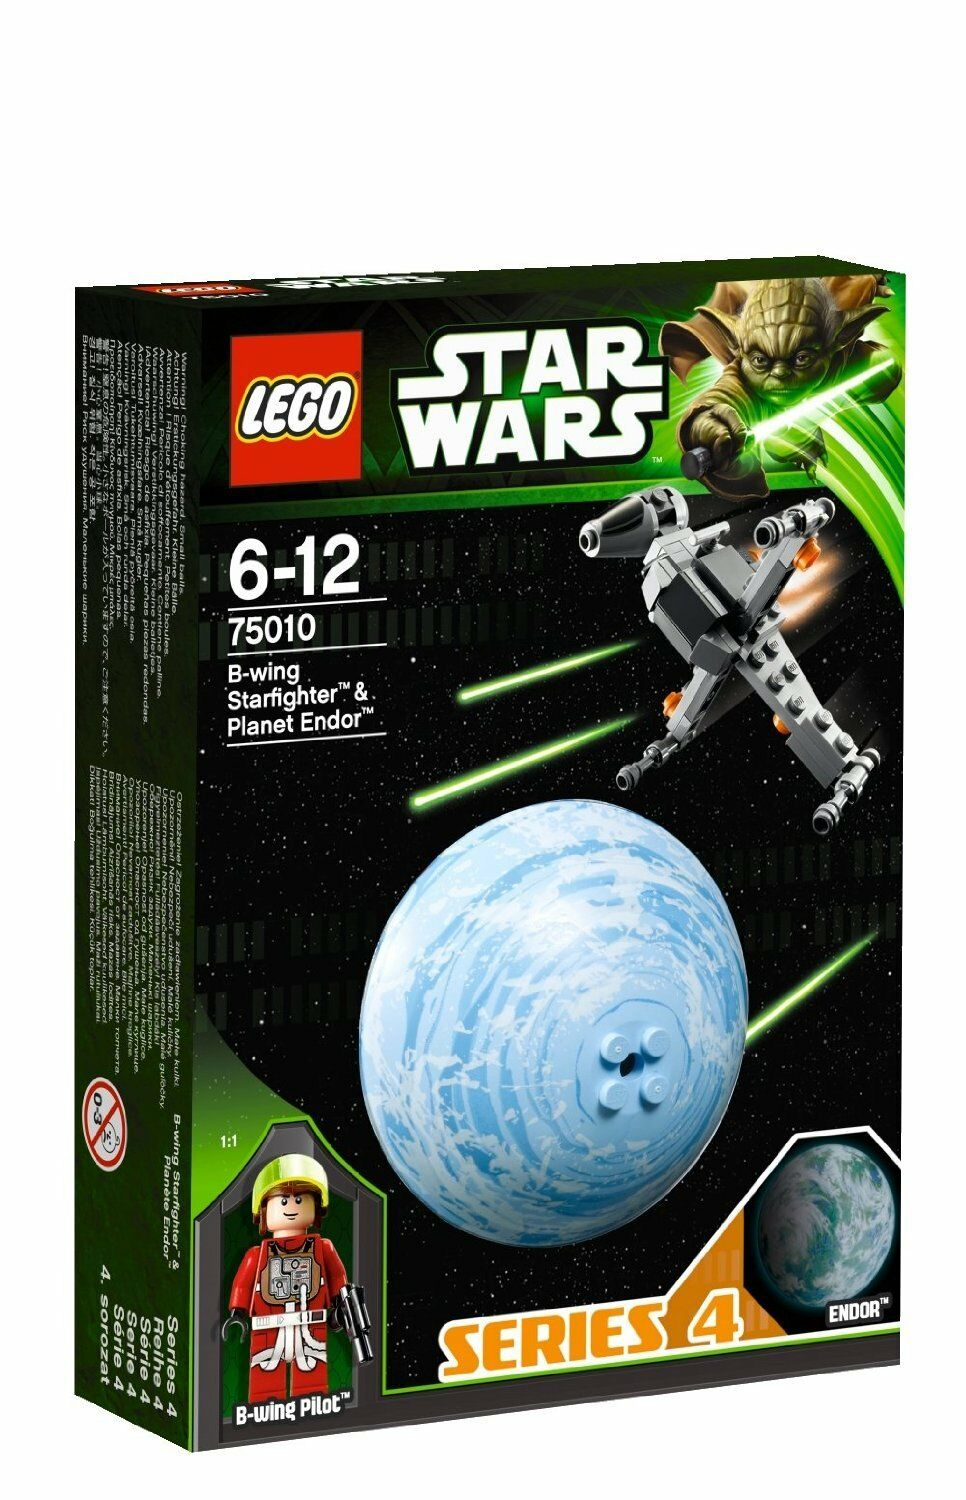 LEGO star wars 75010 B-wing starfighter pilote d'Endor planet planet planet boule series 4 f80d2b